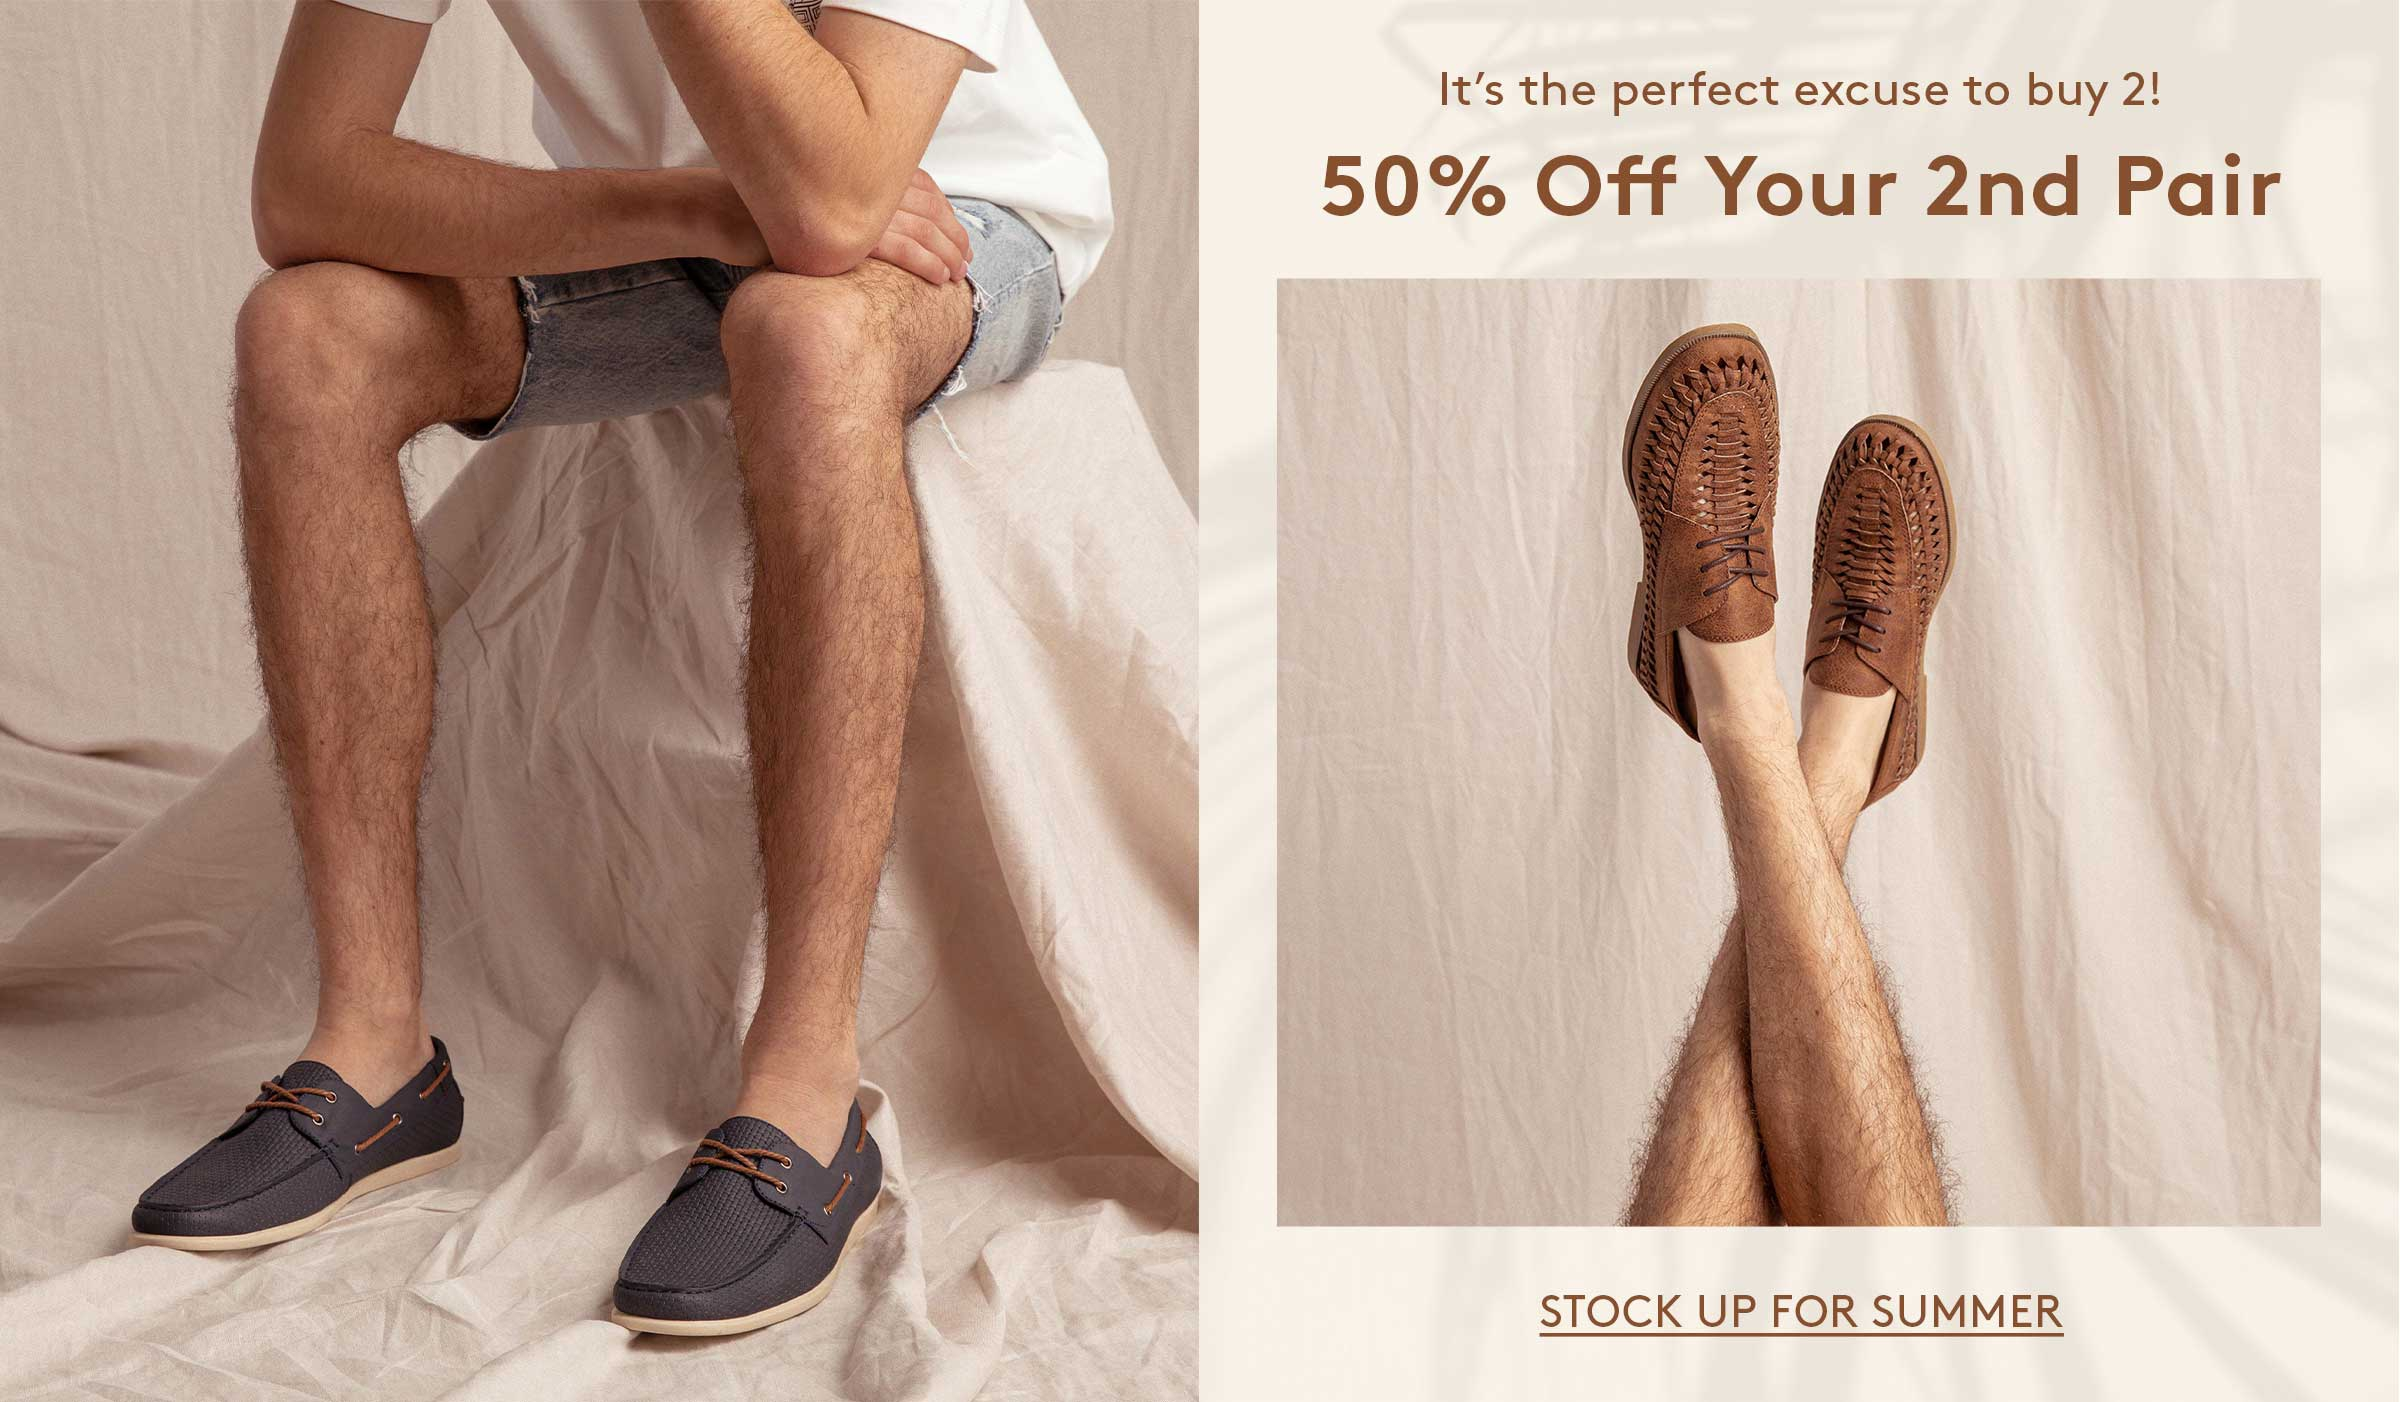 BETTS | Spring Summer | NEW Arrivals | 50% Off 2nd Pair